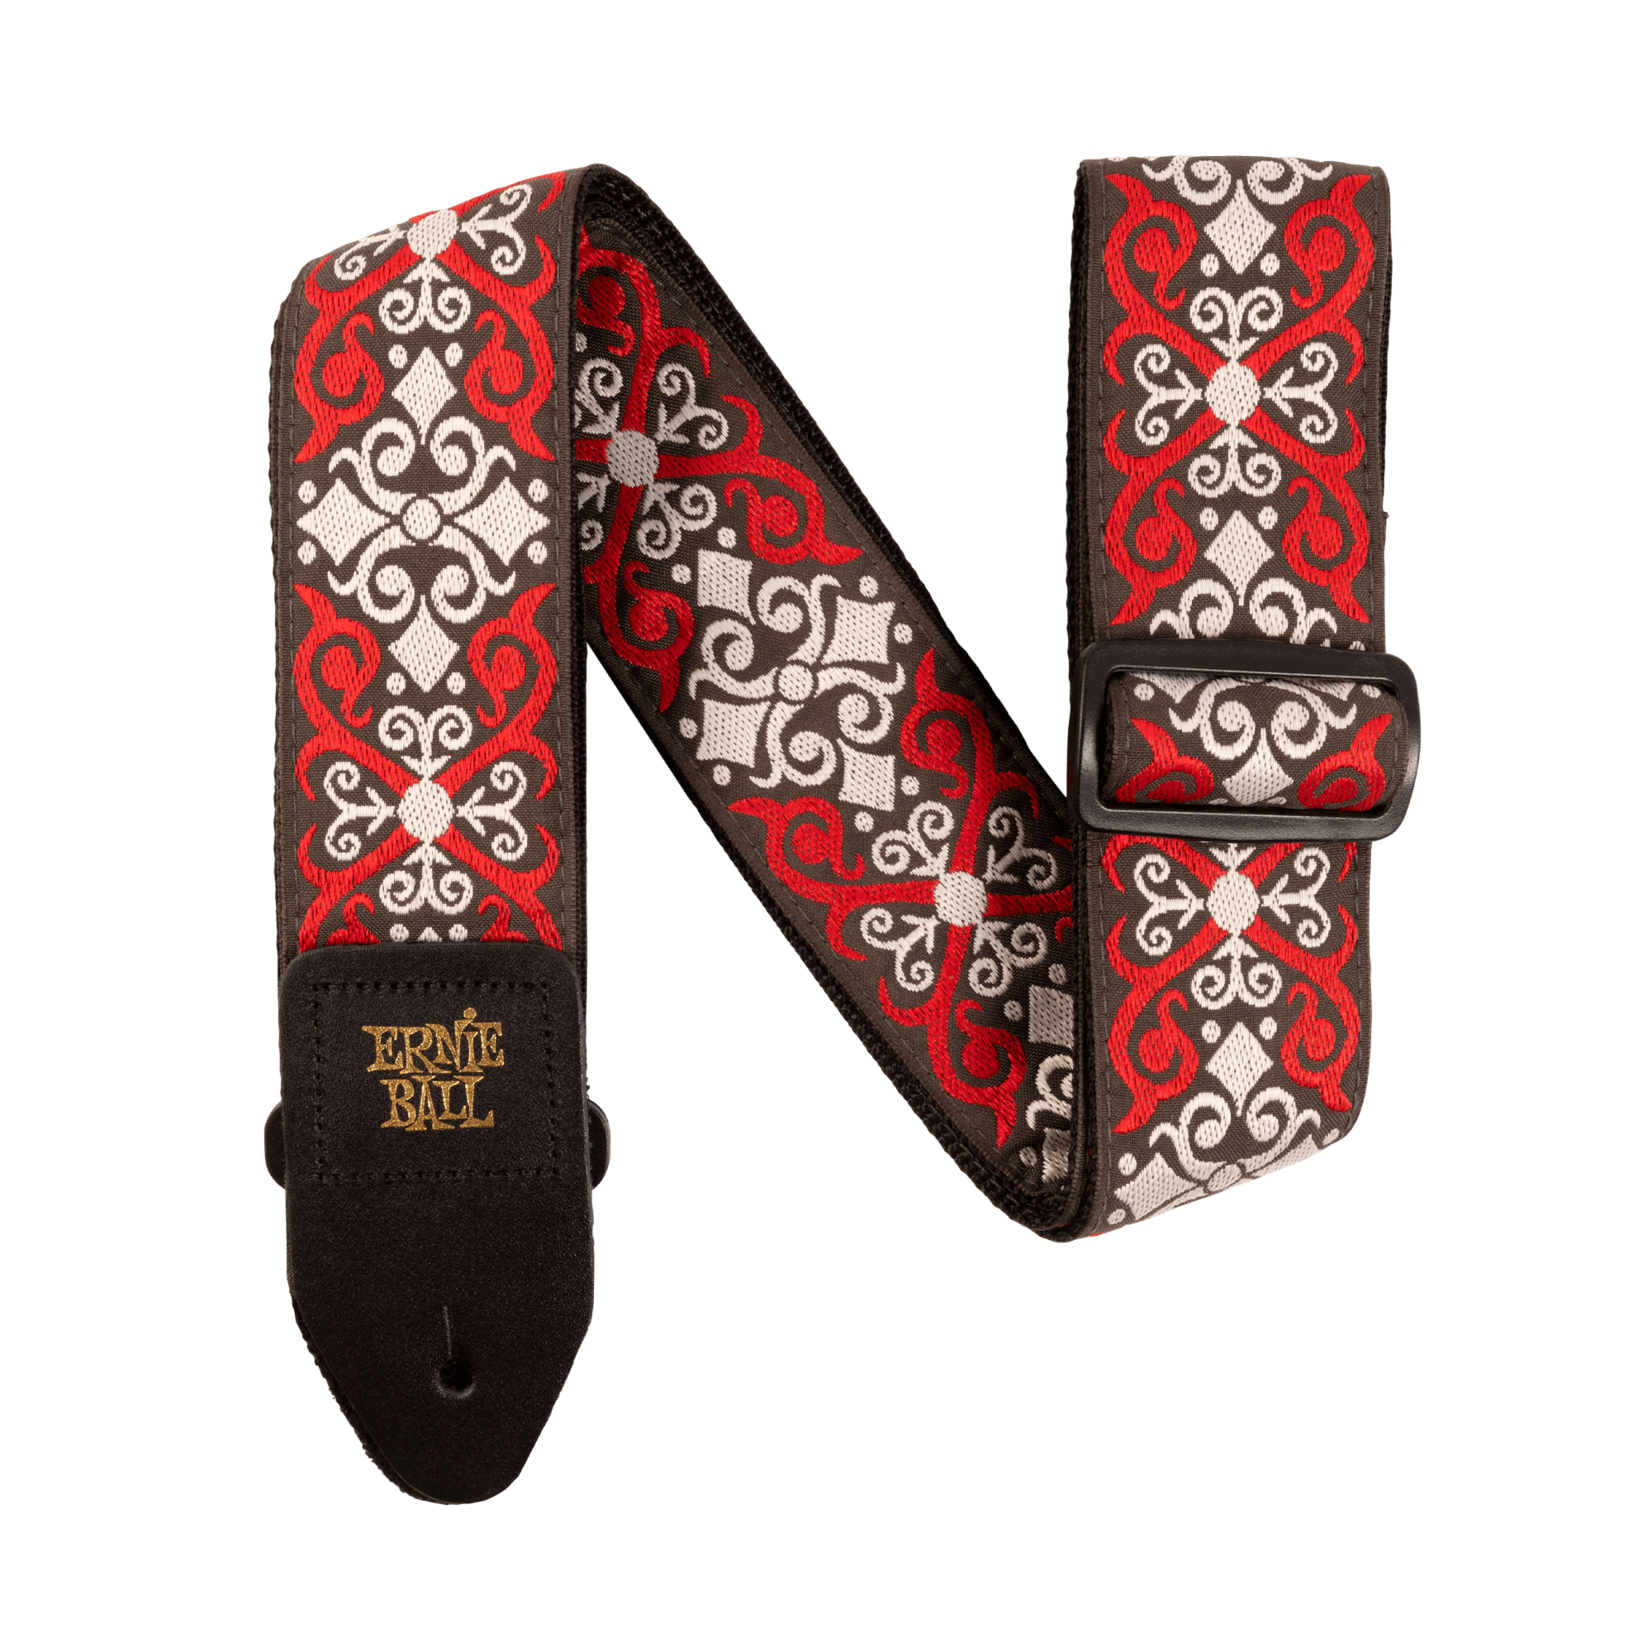 Ernie Ball Ernie Ball Red Trellis Jacquard Guitar Strap